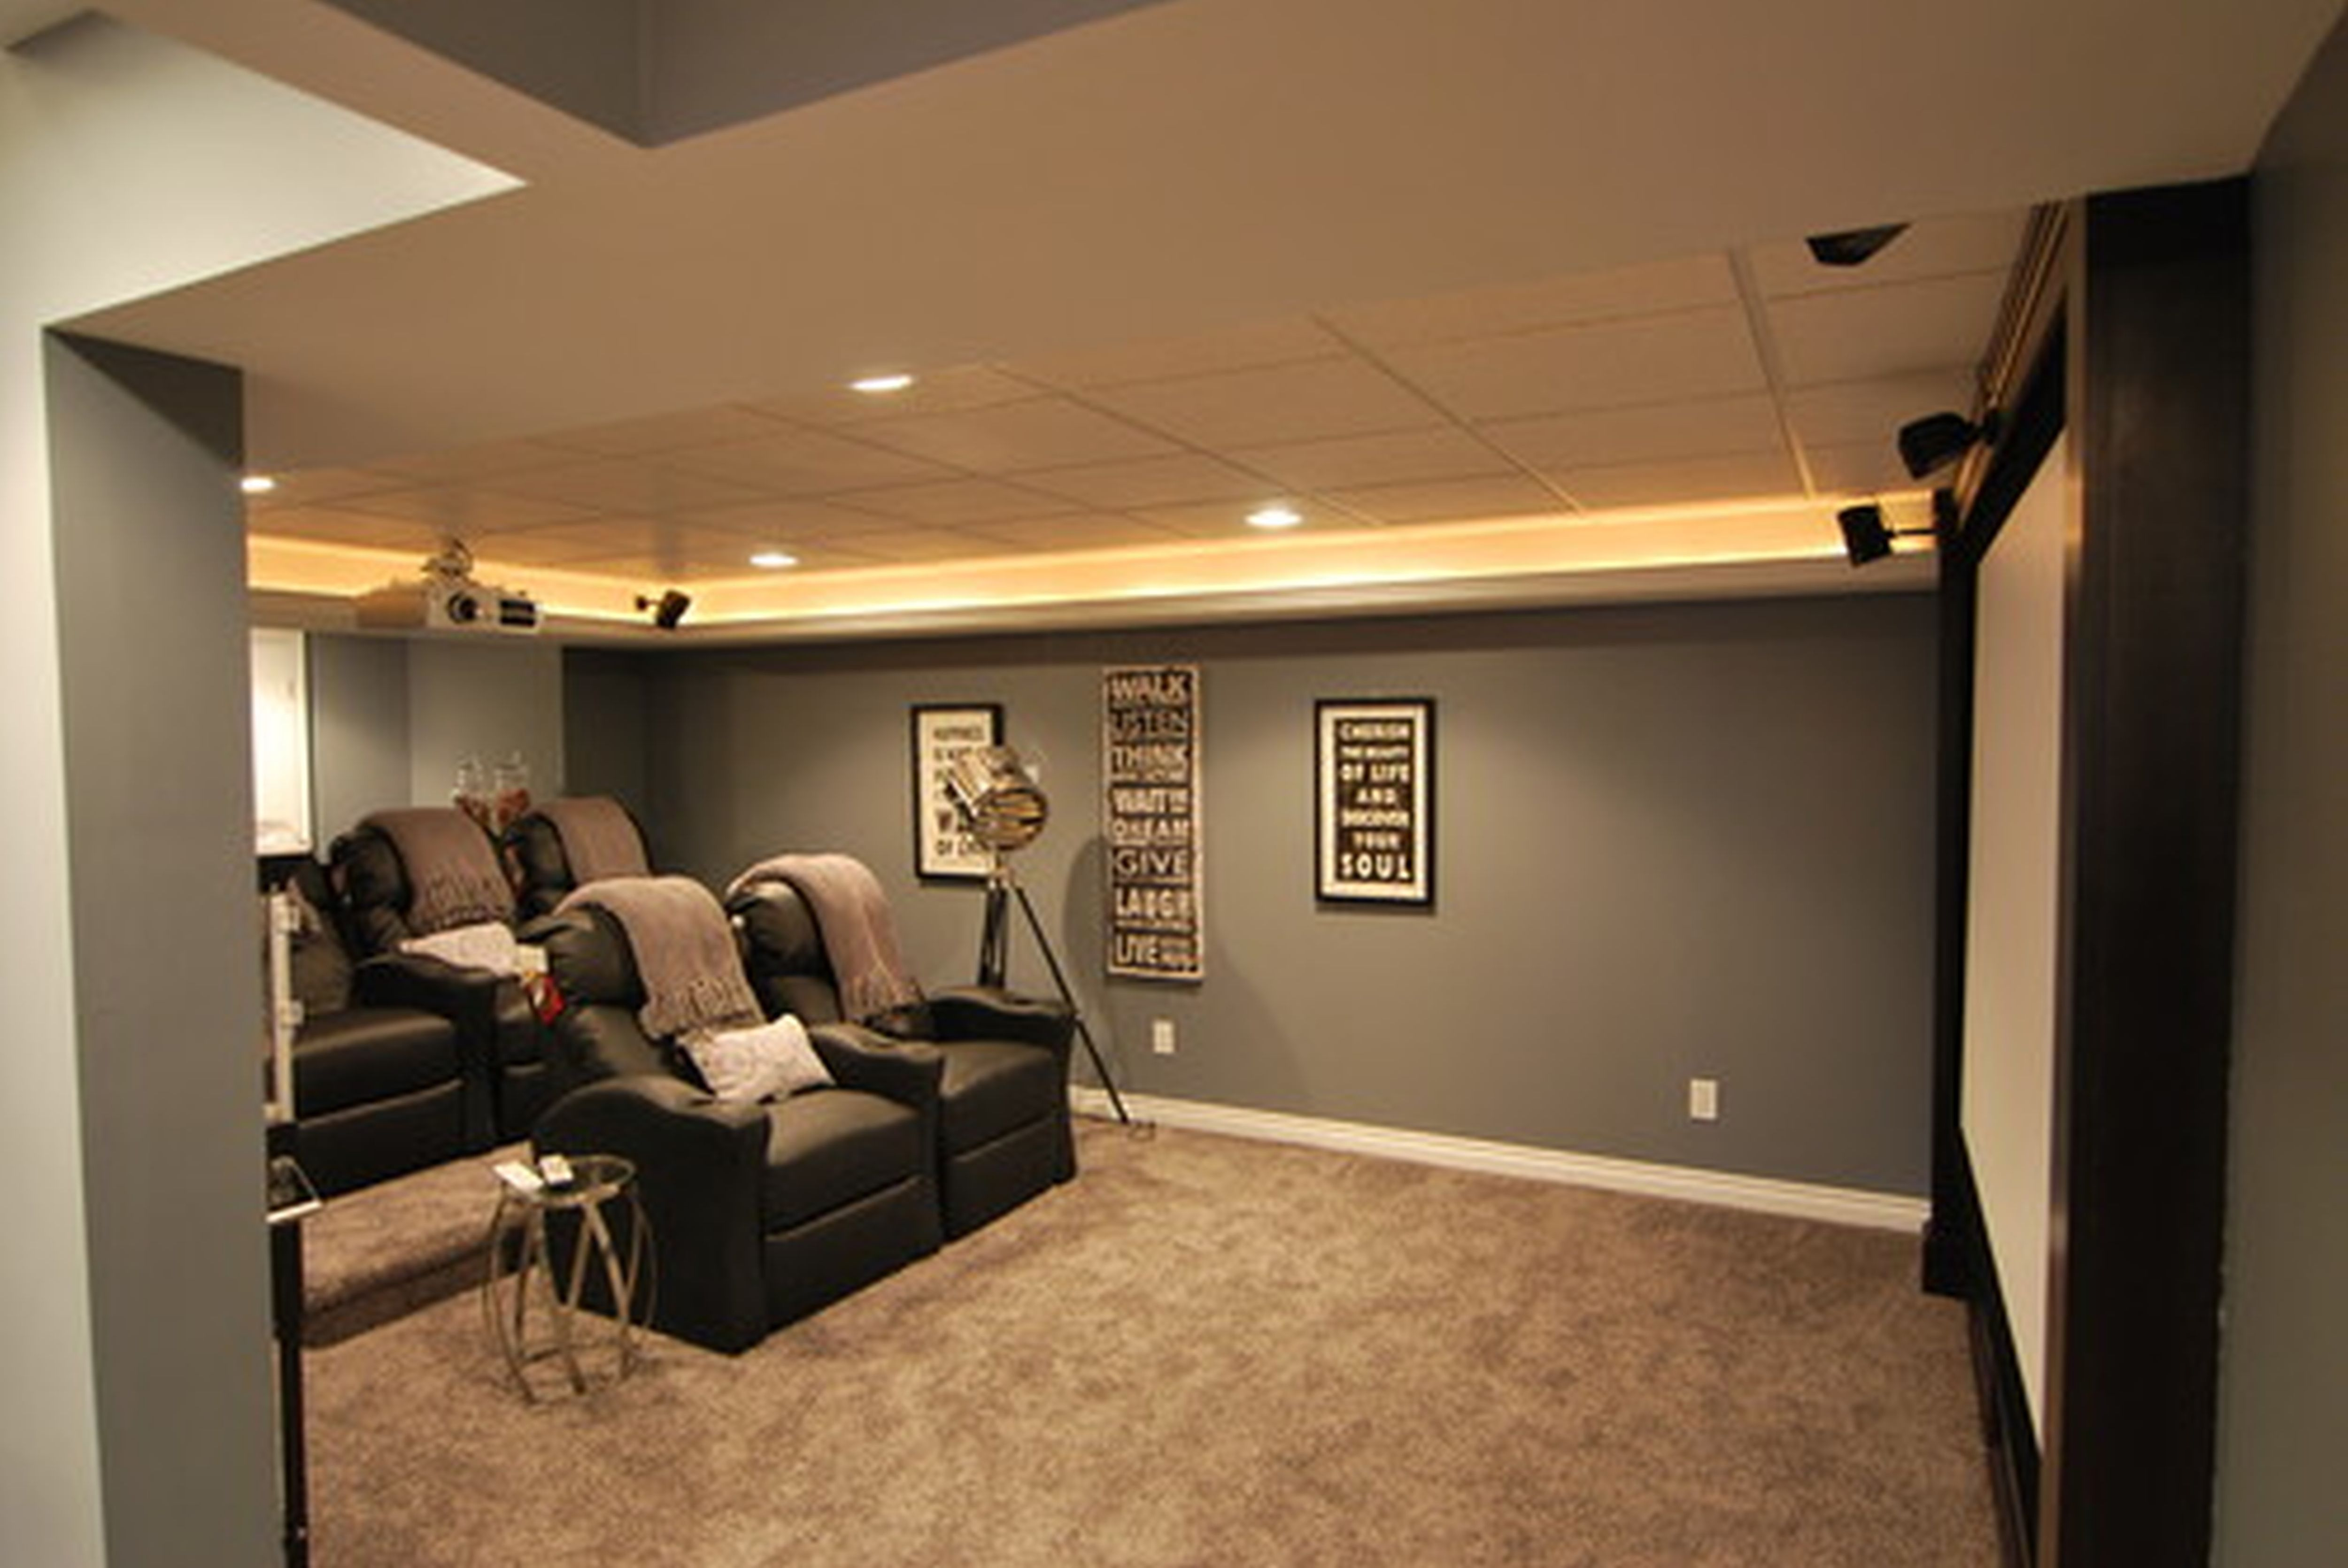 exceptional Interior Modern residents with Basement / underground Rooms amazing pictures